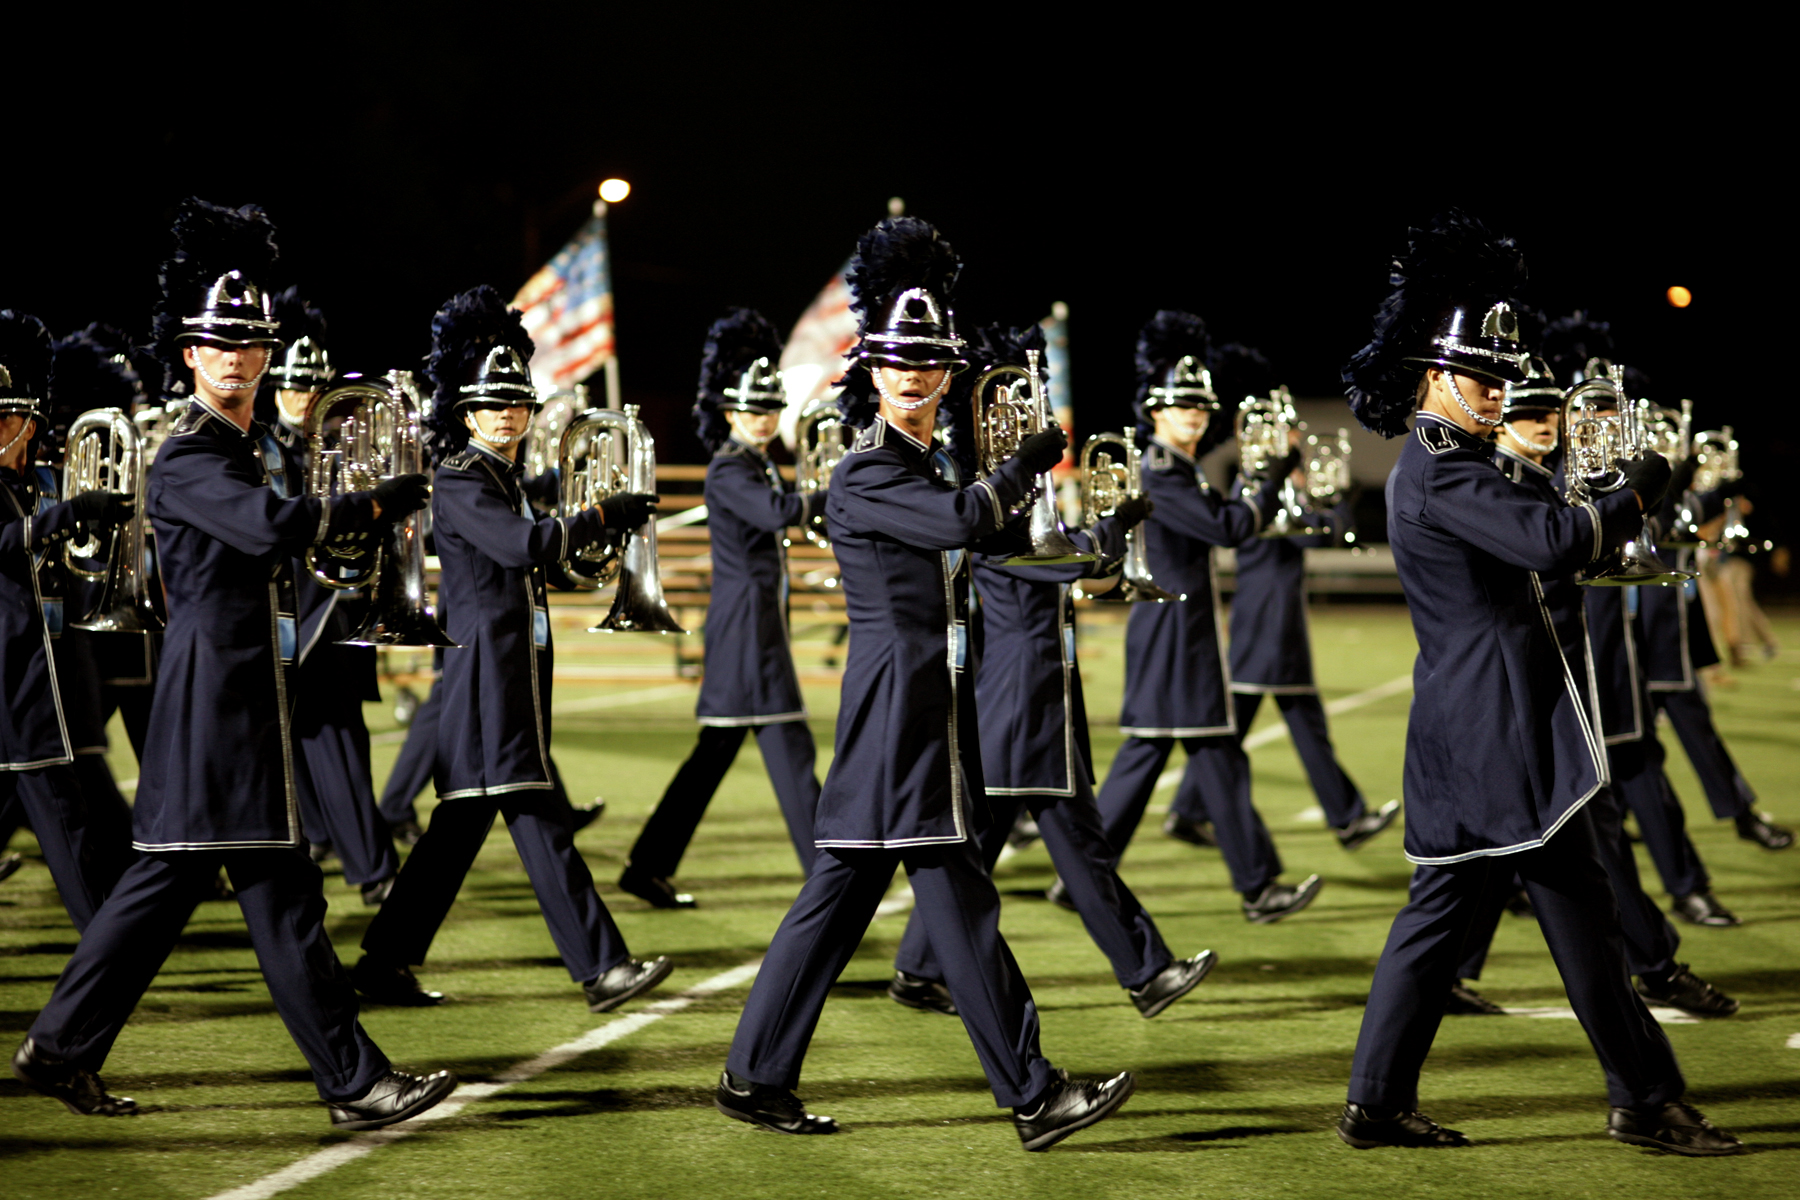 Welcome to The Greater New Orleans Drum Corps Association Website The purpose of GNODCA is to preserve and build on the great tradition of the drum and bugle corps